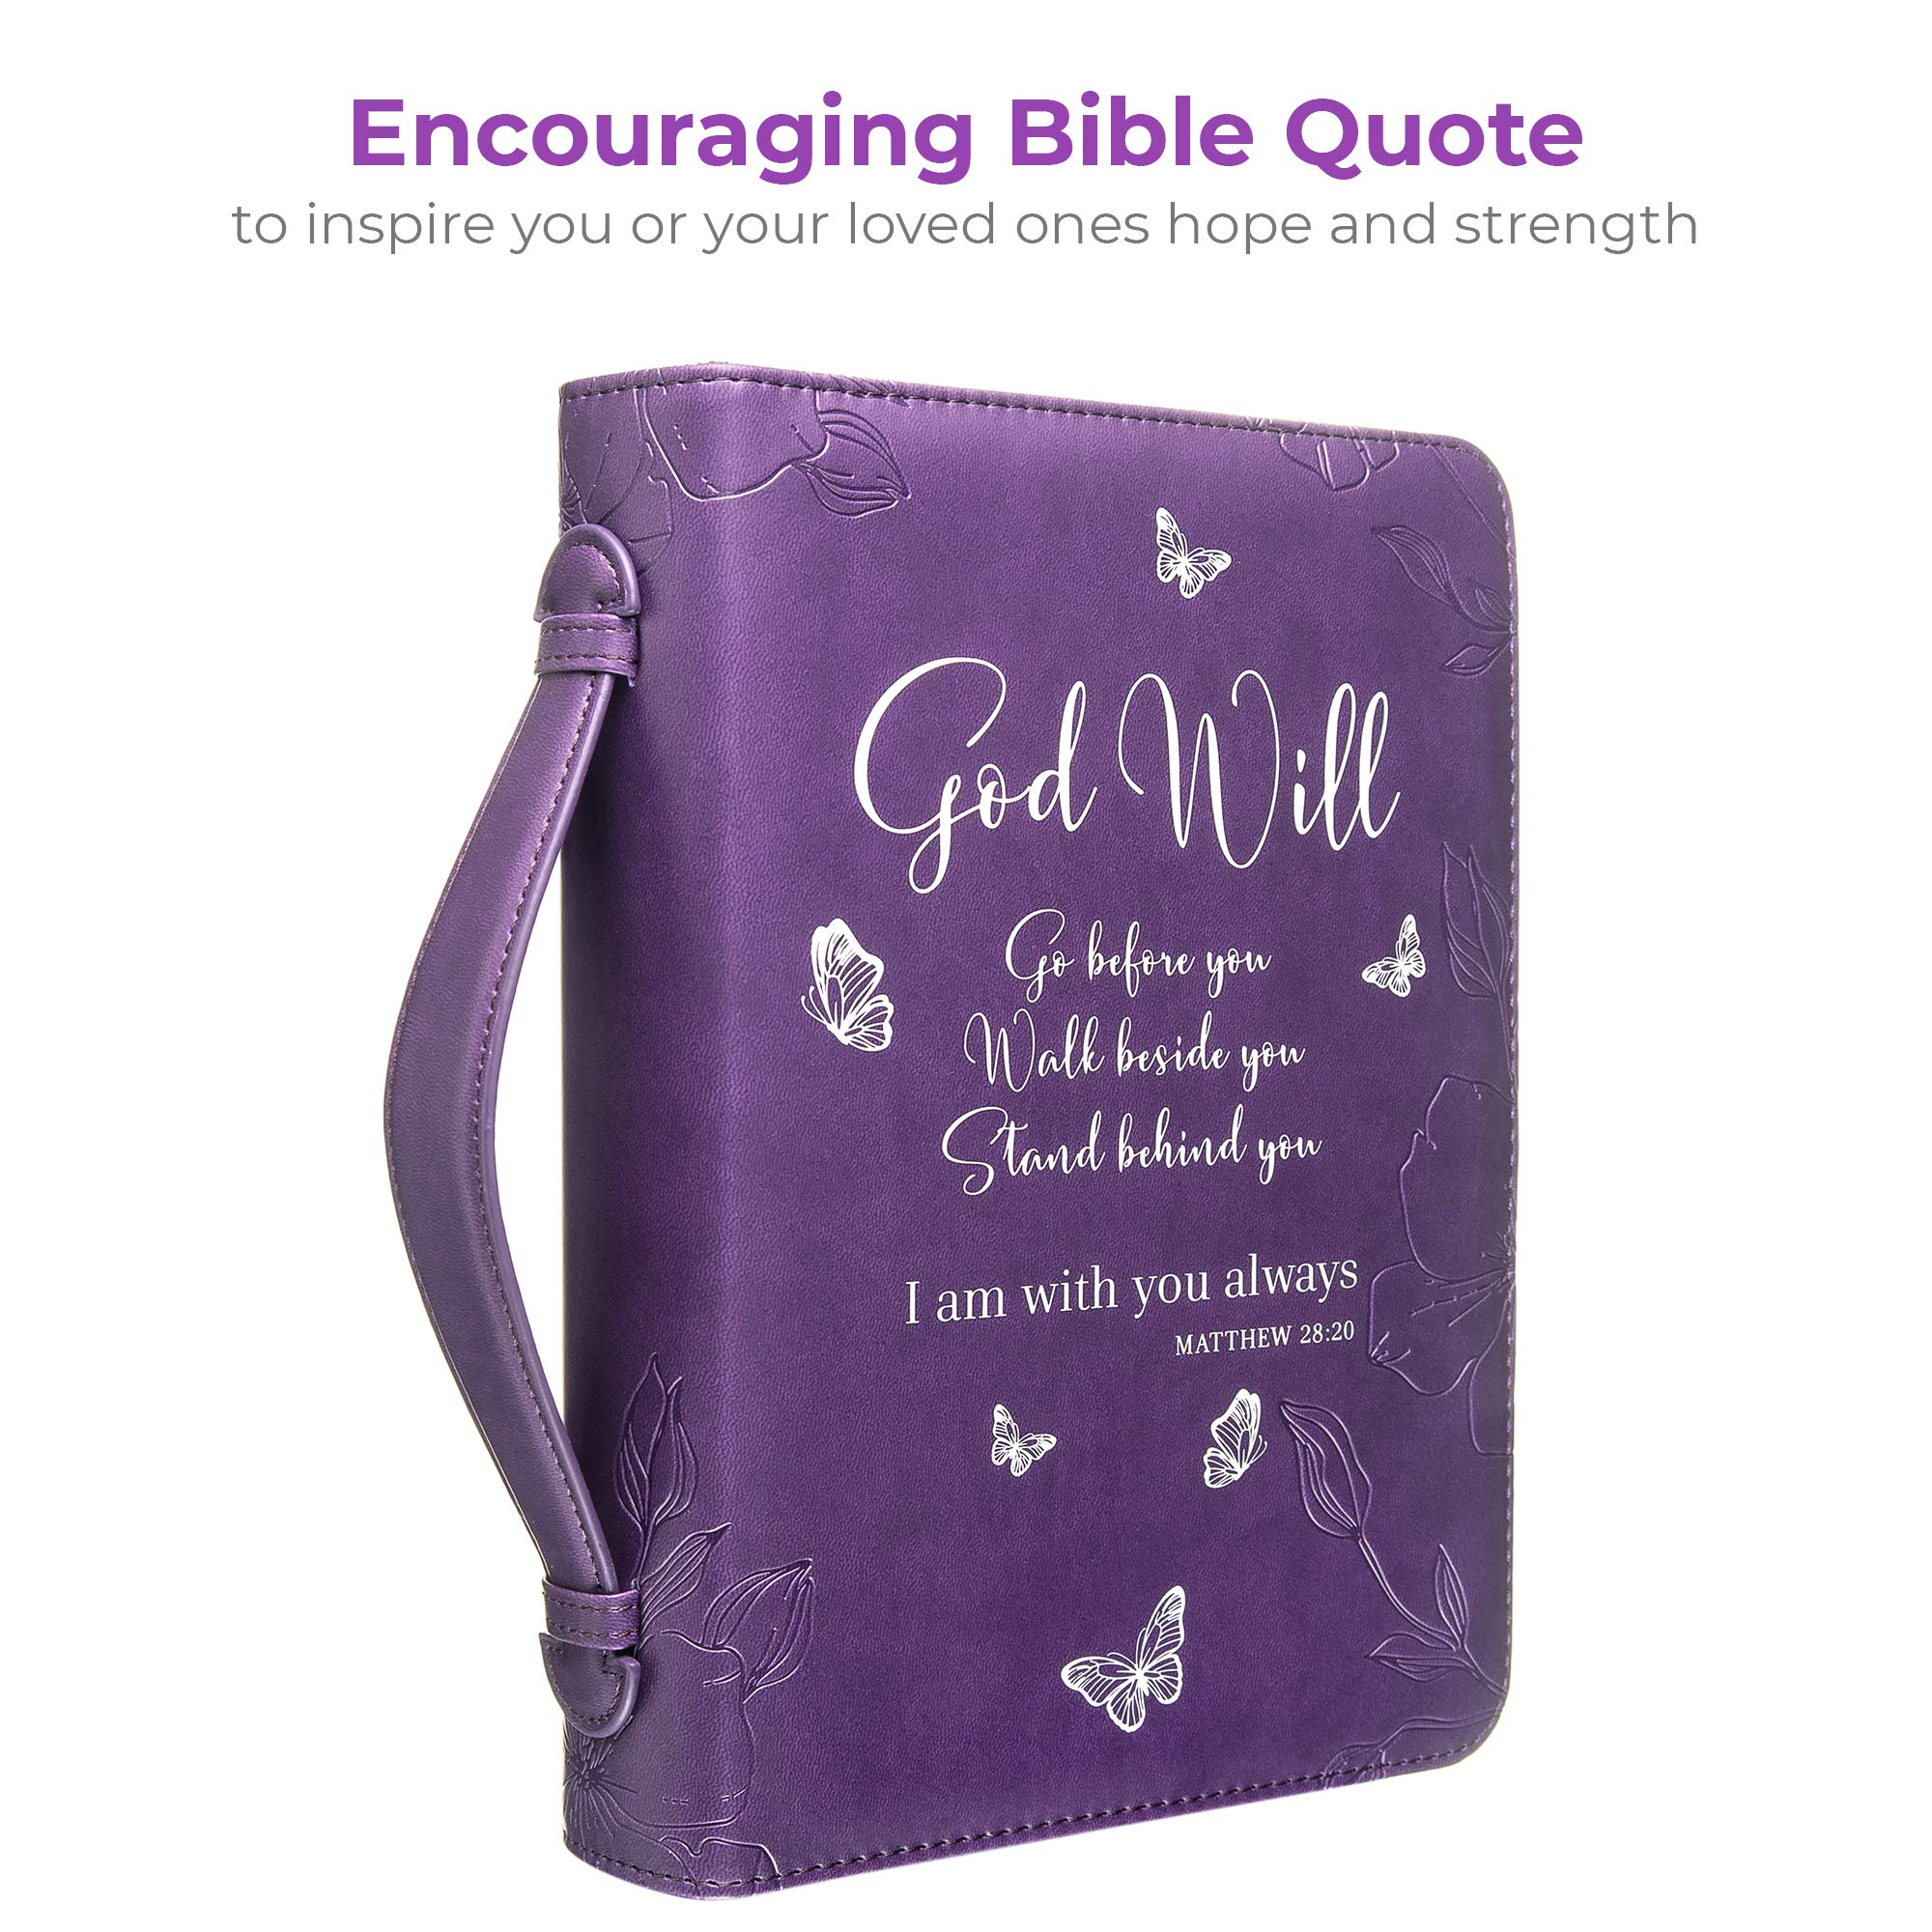 Bible Cover - Book Case in Purple with Butterflies - Blessed - Perfect Christian Gift for Women and Girls - Fits Most Popular Bible Sizes (10 x 7 x 2.5 inches) - Faux PU Leather